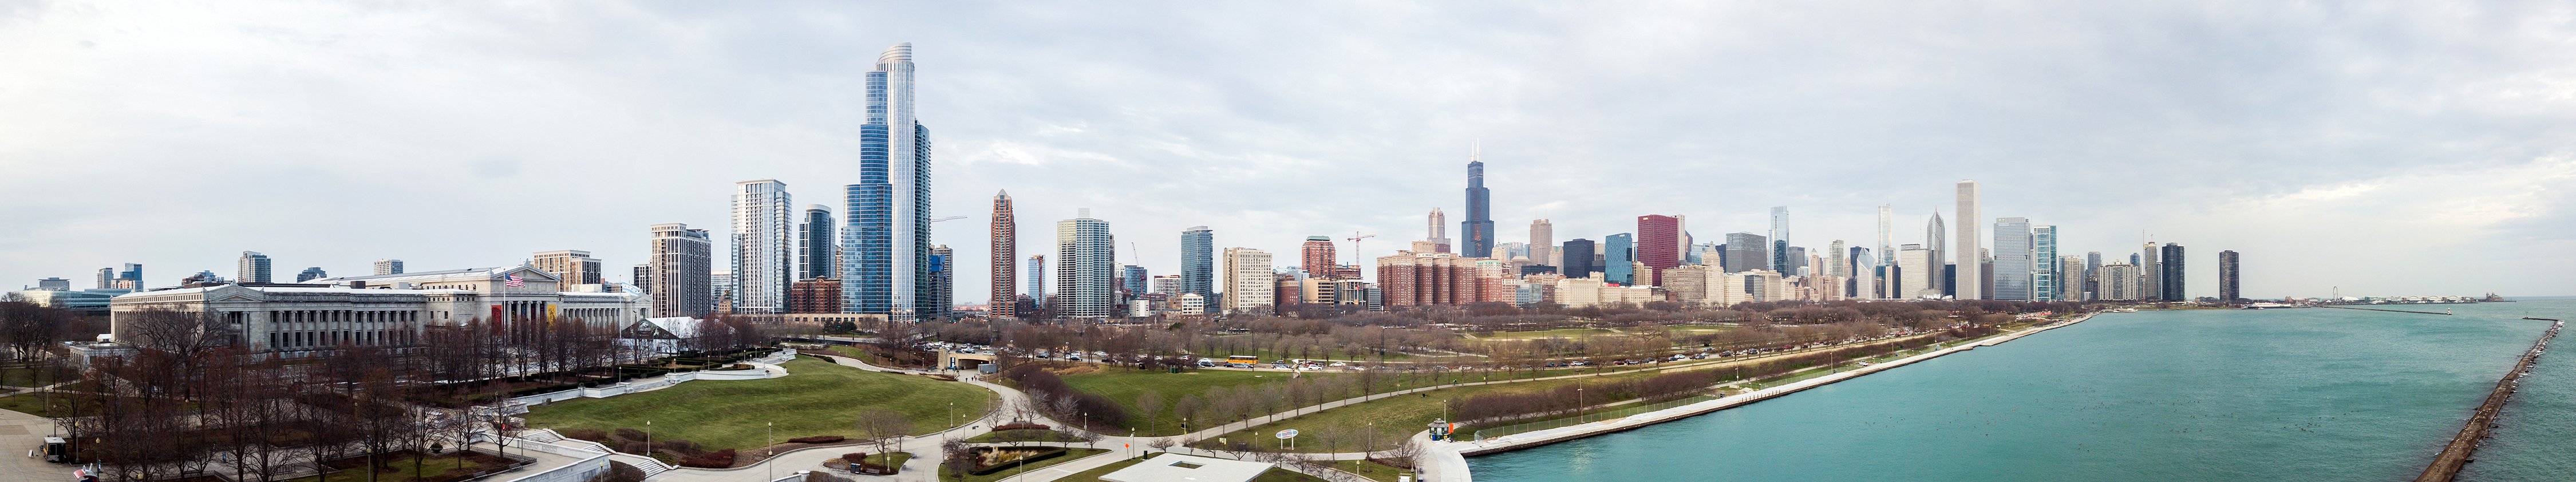 PG Chicago Drone